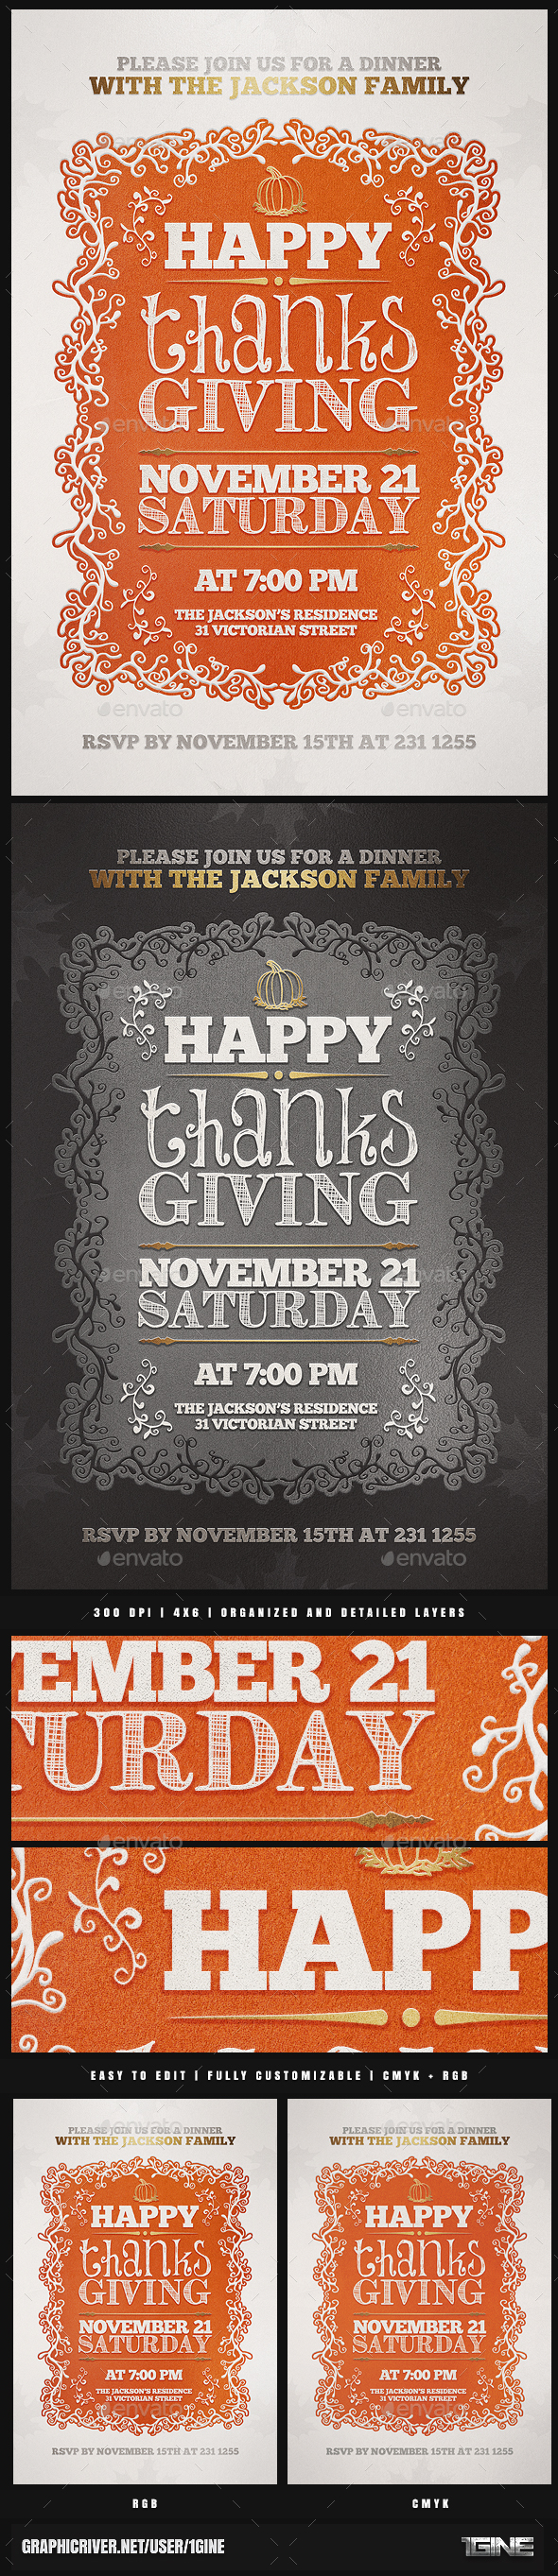 Thanksgiving Invitation Flyer Template - Holidays Events